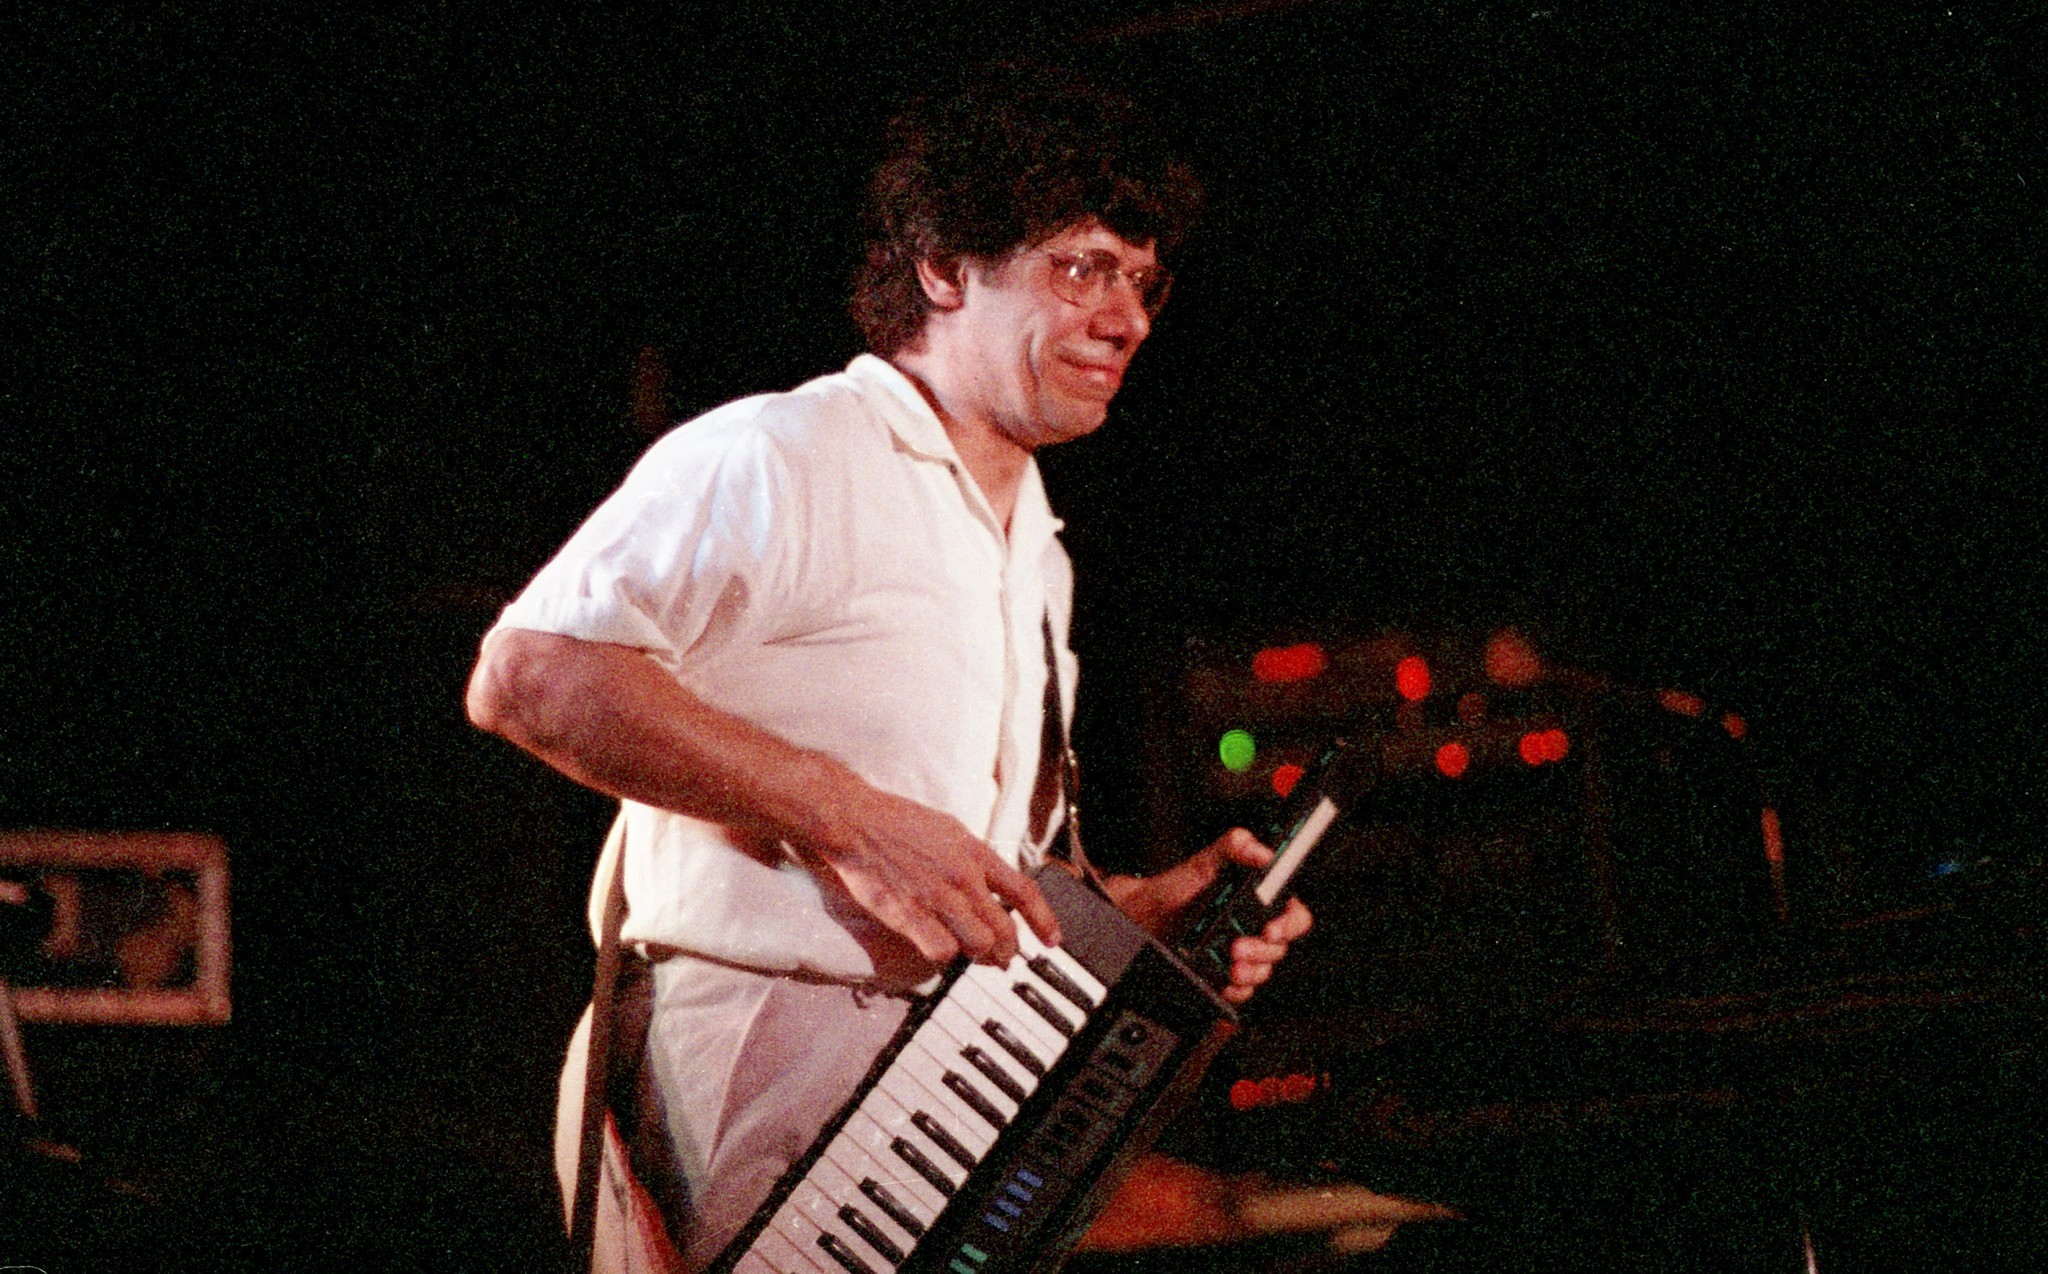 Chick Corea performs at Elario's on April 16, 1985.